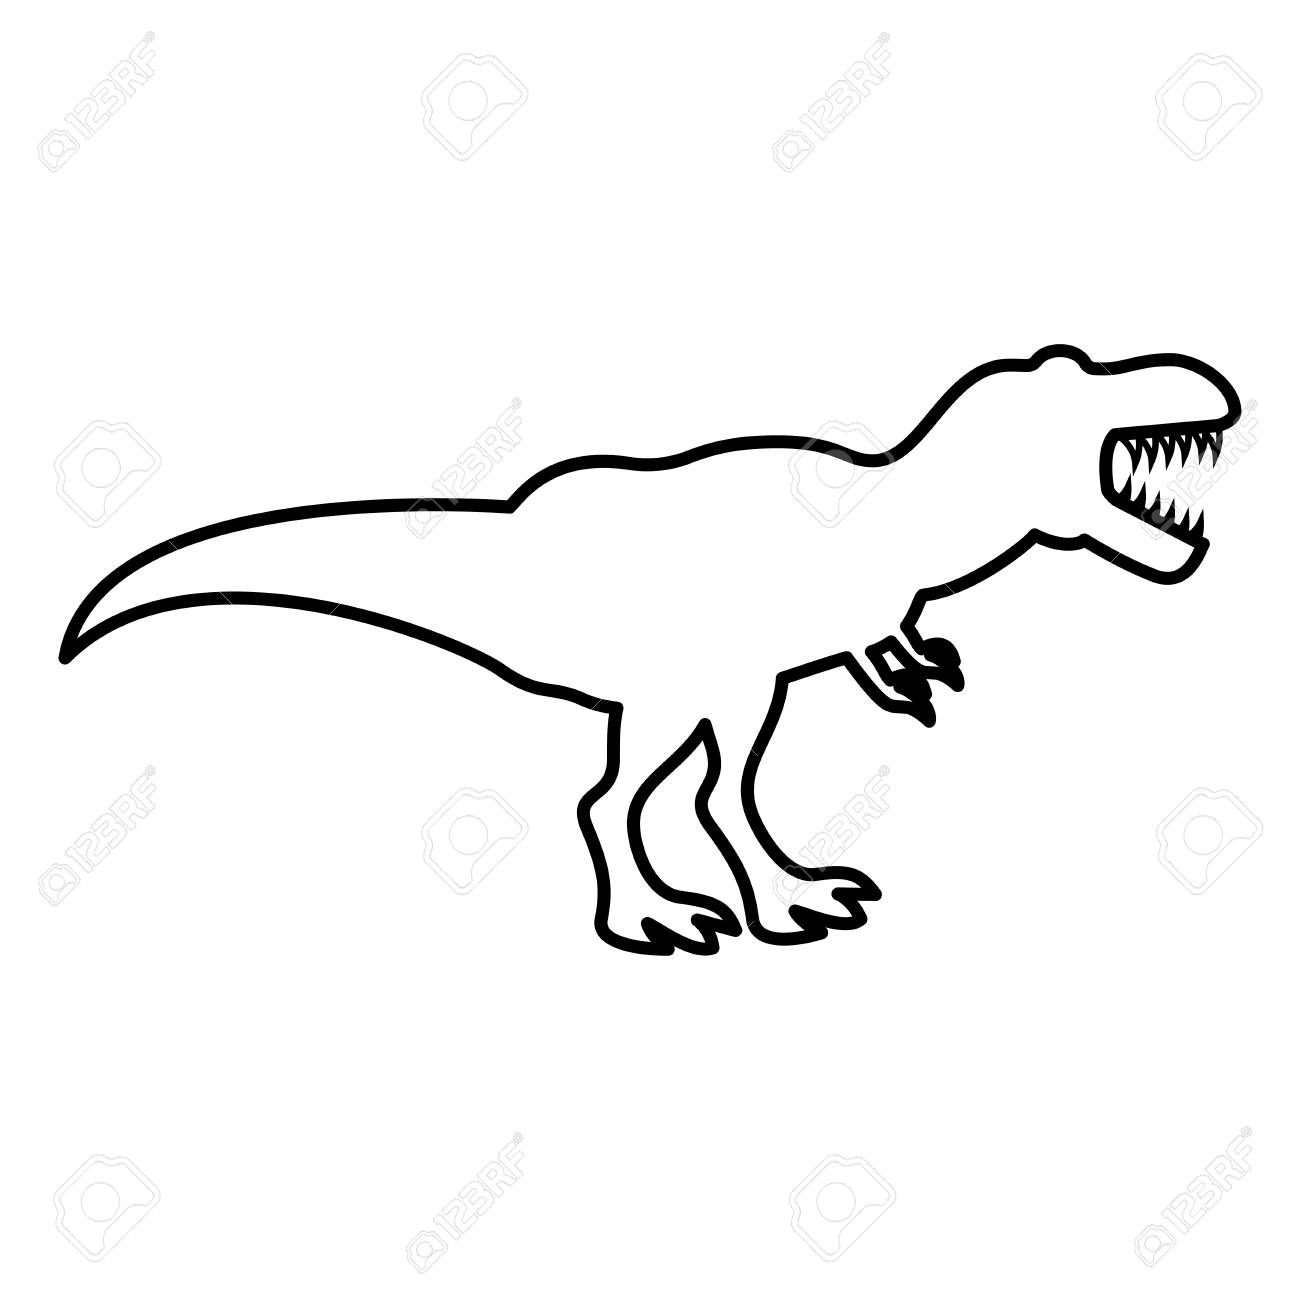 Outline Pictures Of Dinosaurs